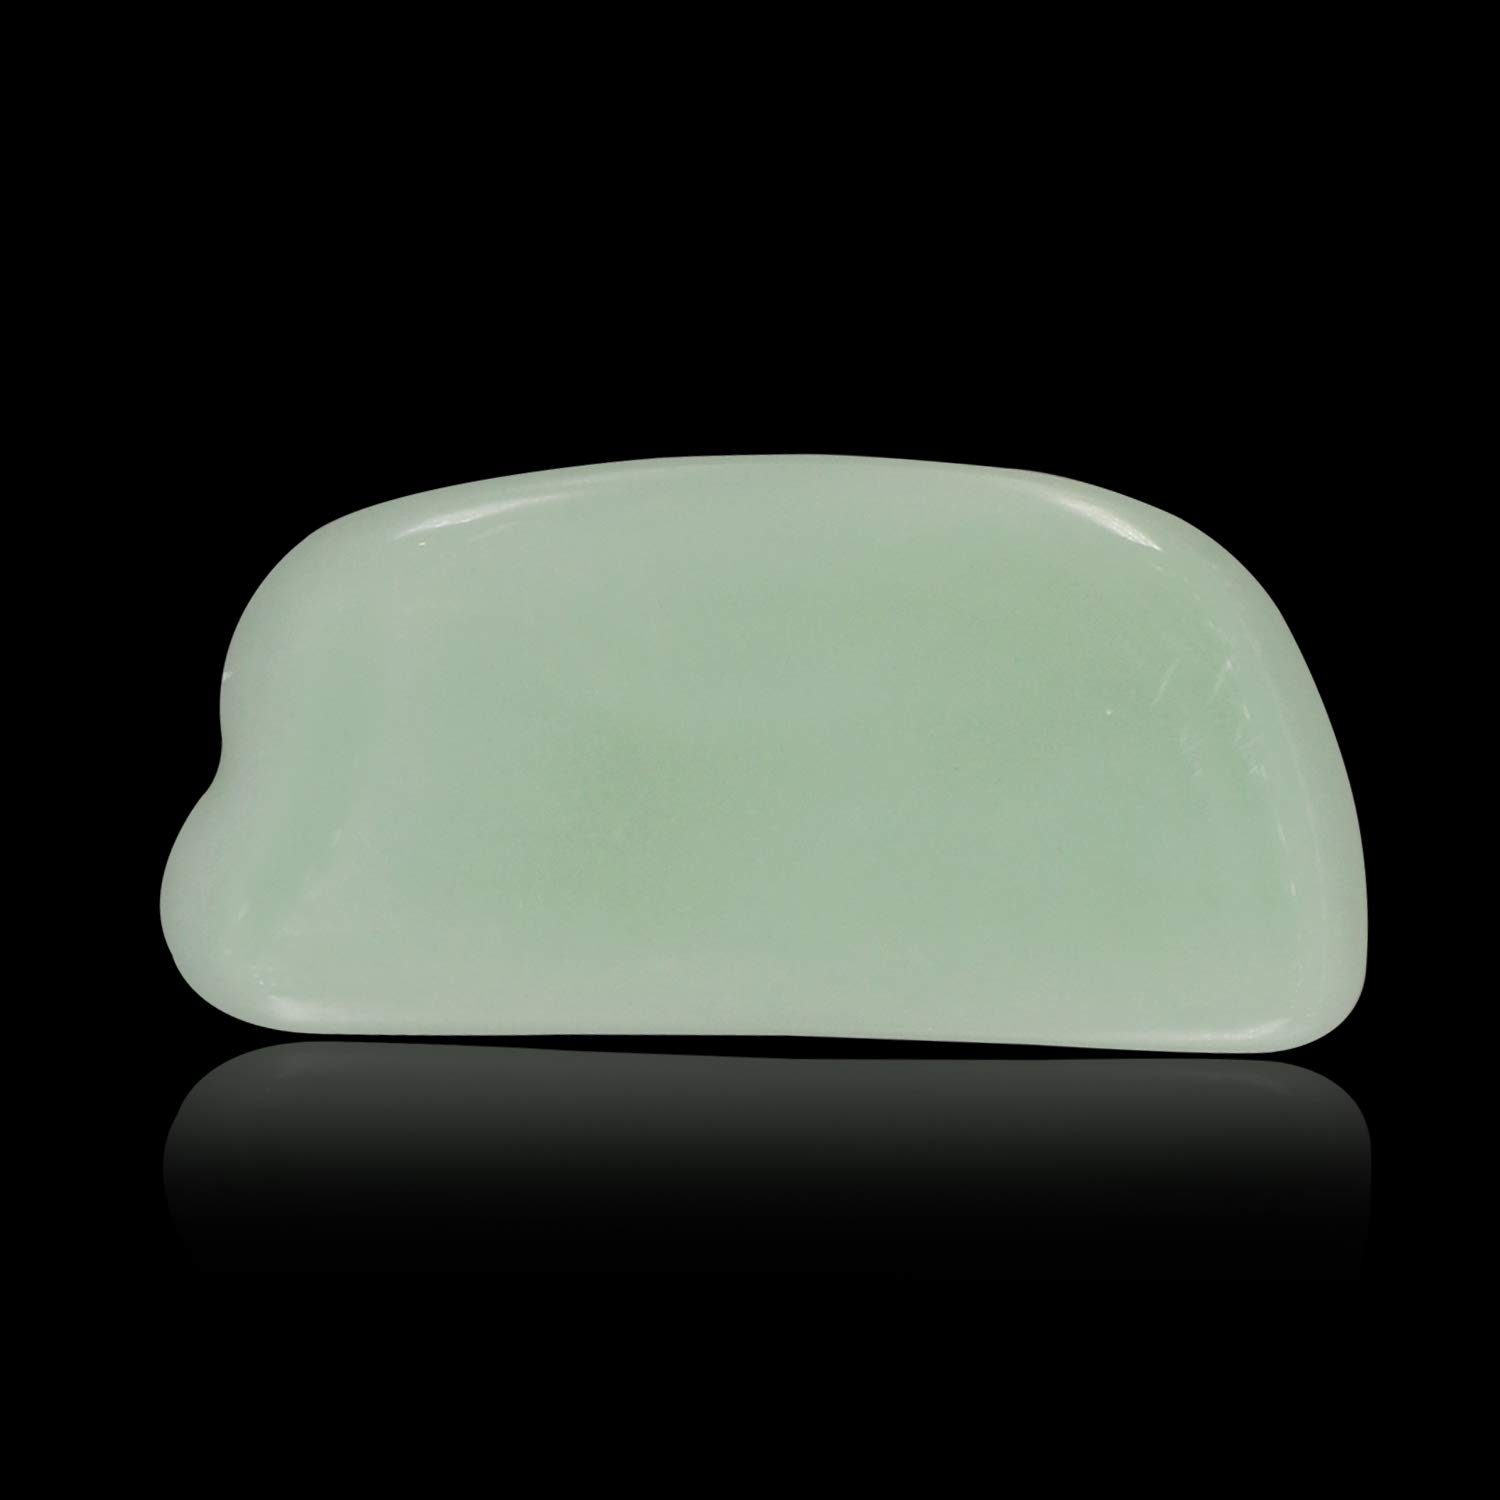 Zureni GSB-HZ-7-4 Gua Sha Scraping Massage Tool for Facial Glow, Blood Circulation, Natural Jade Stone Removes Toxins, Prevents Wrinkles, Boost Radiance of Complexion (1 Pc, Light Green)